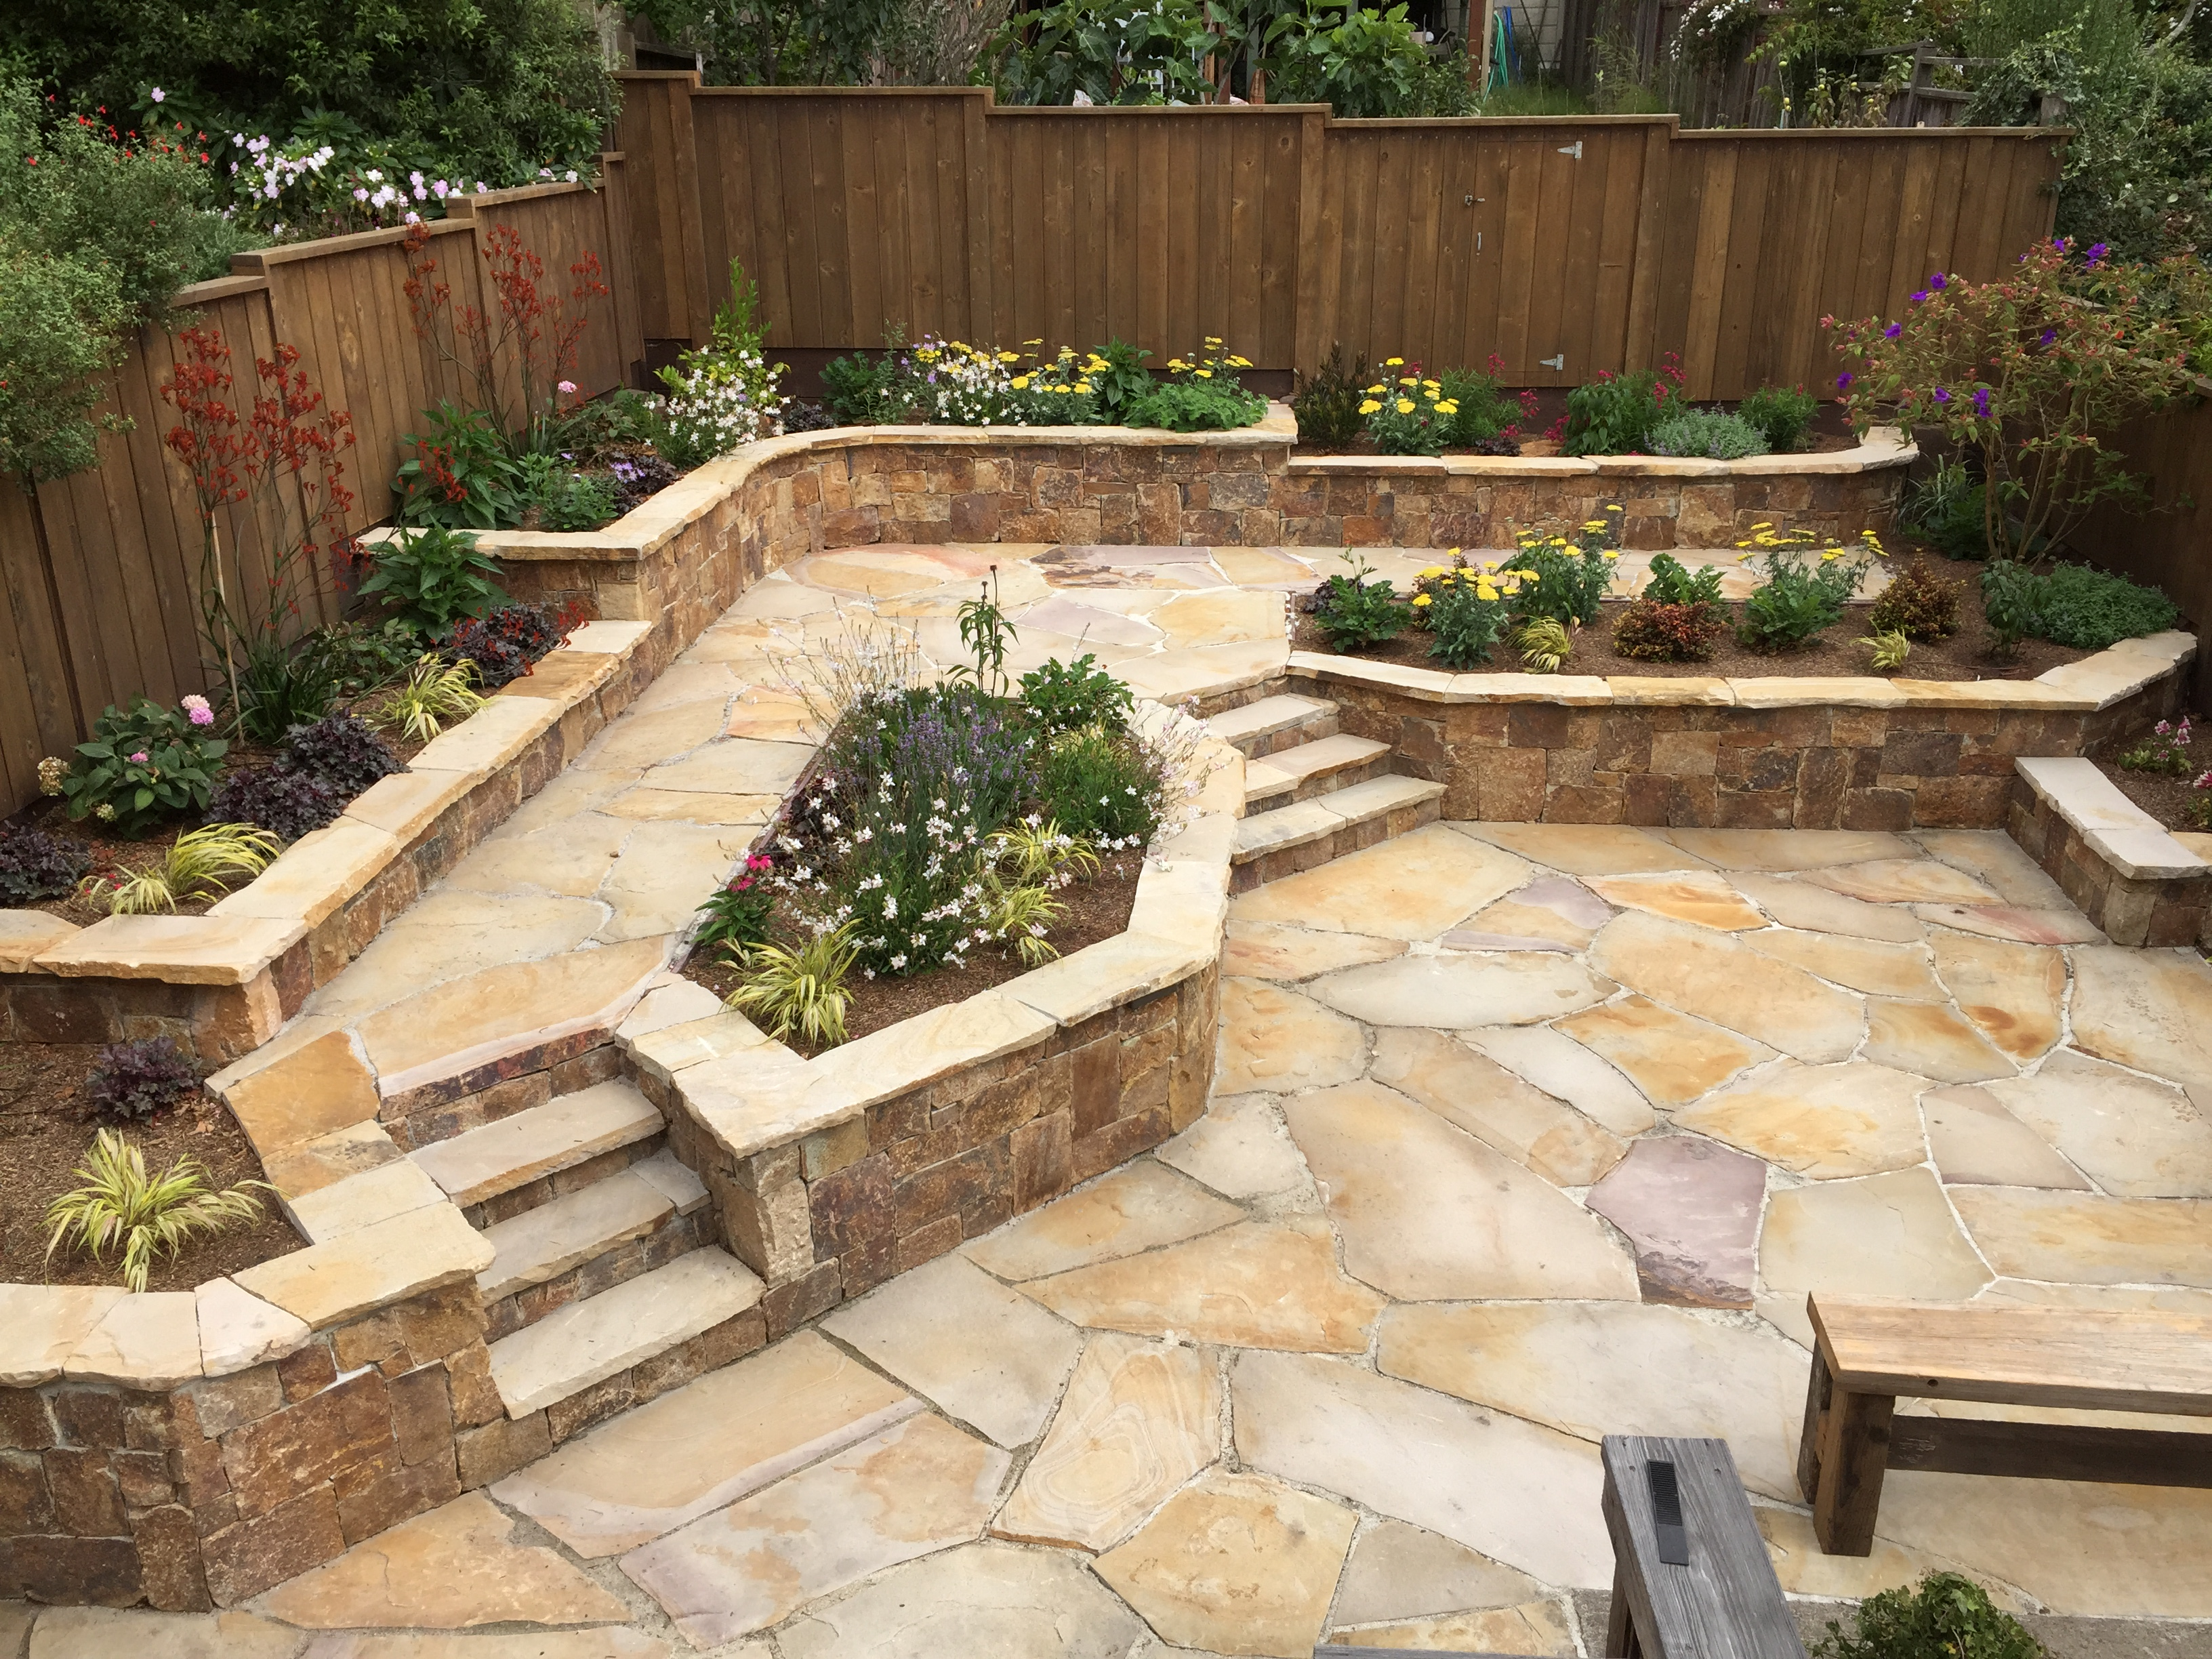 Landscape Stone Ground Cover : Ground cover landscaping